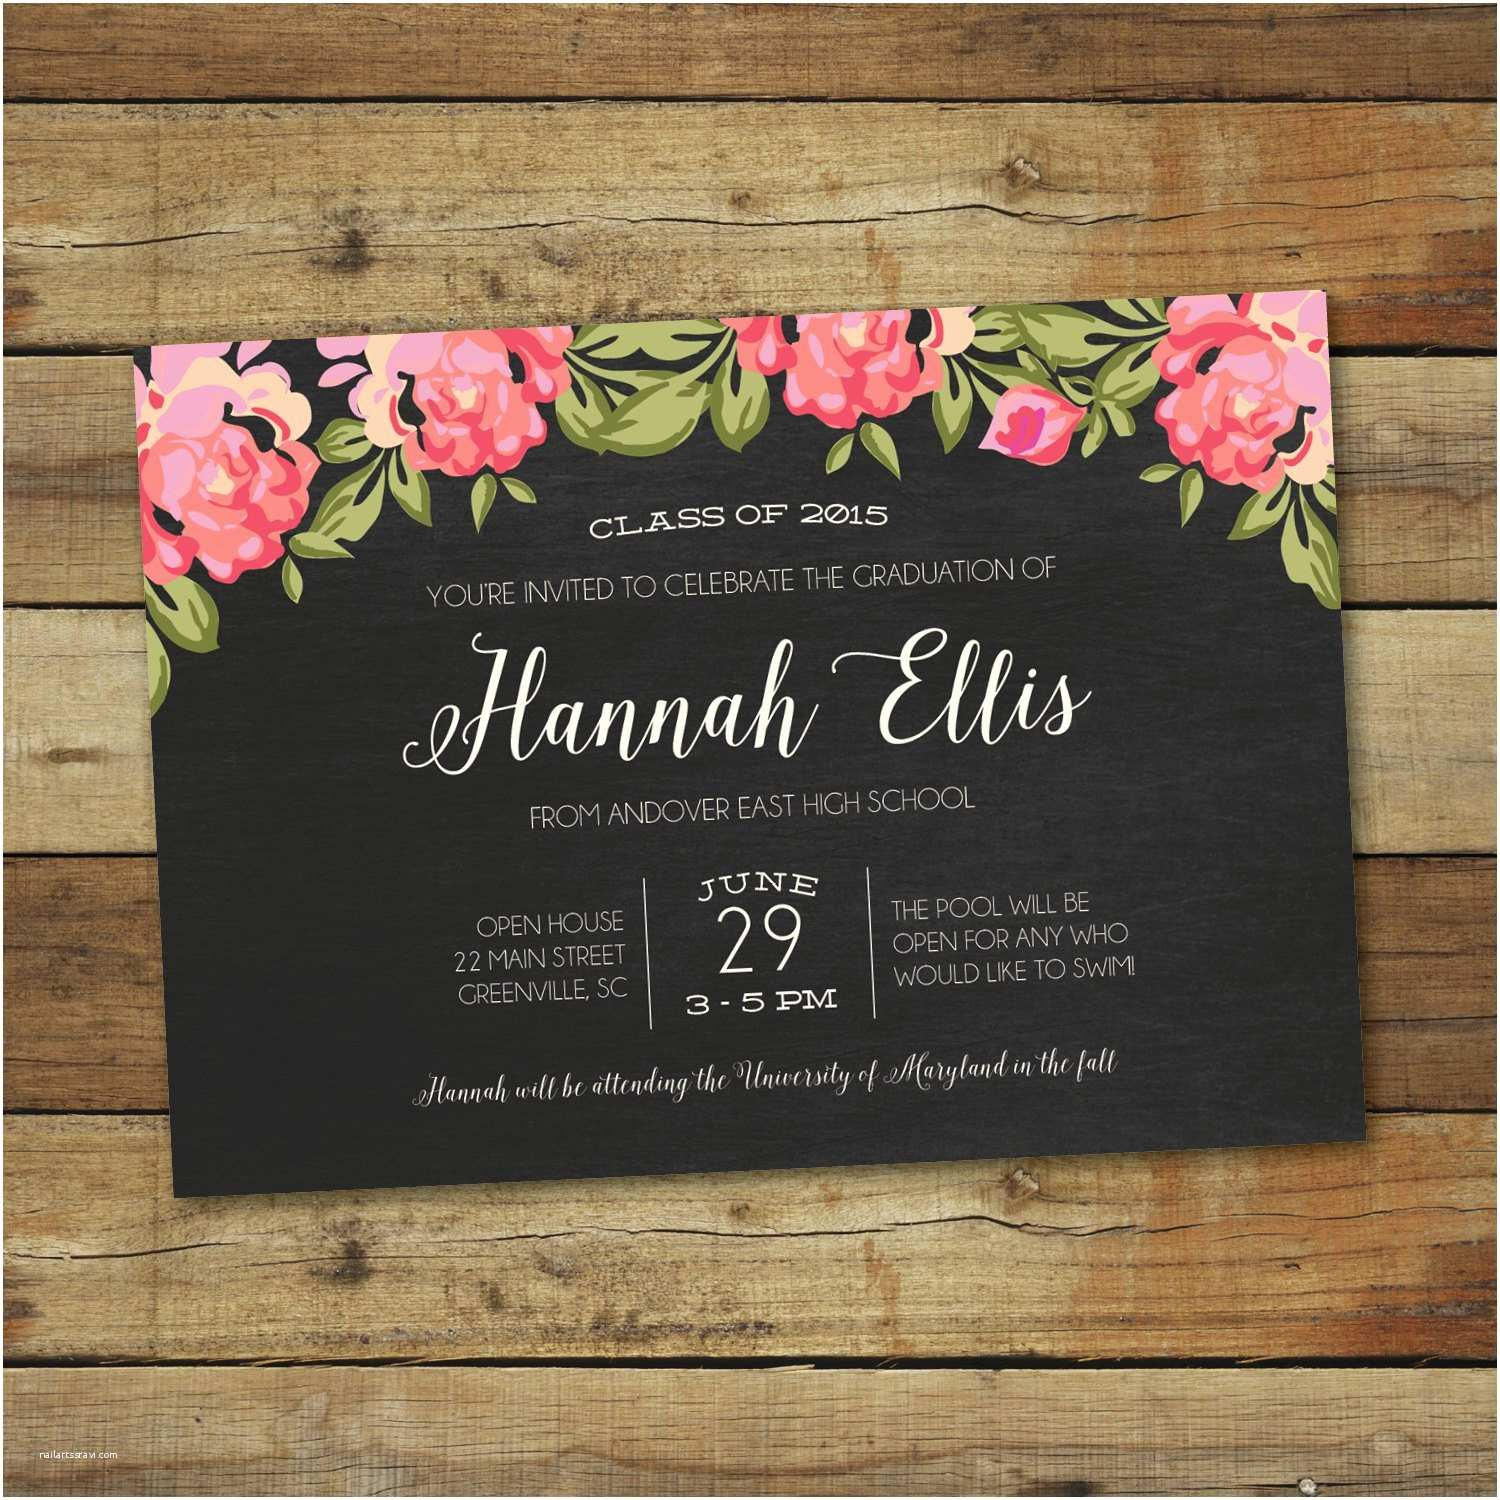 Graduation Party Invitation Ideas Graduation Invitation Graduation Invitation Templates